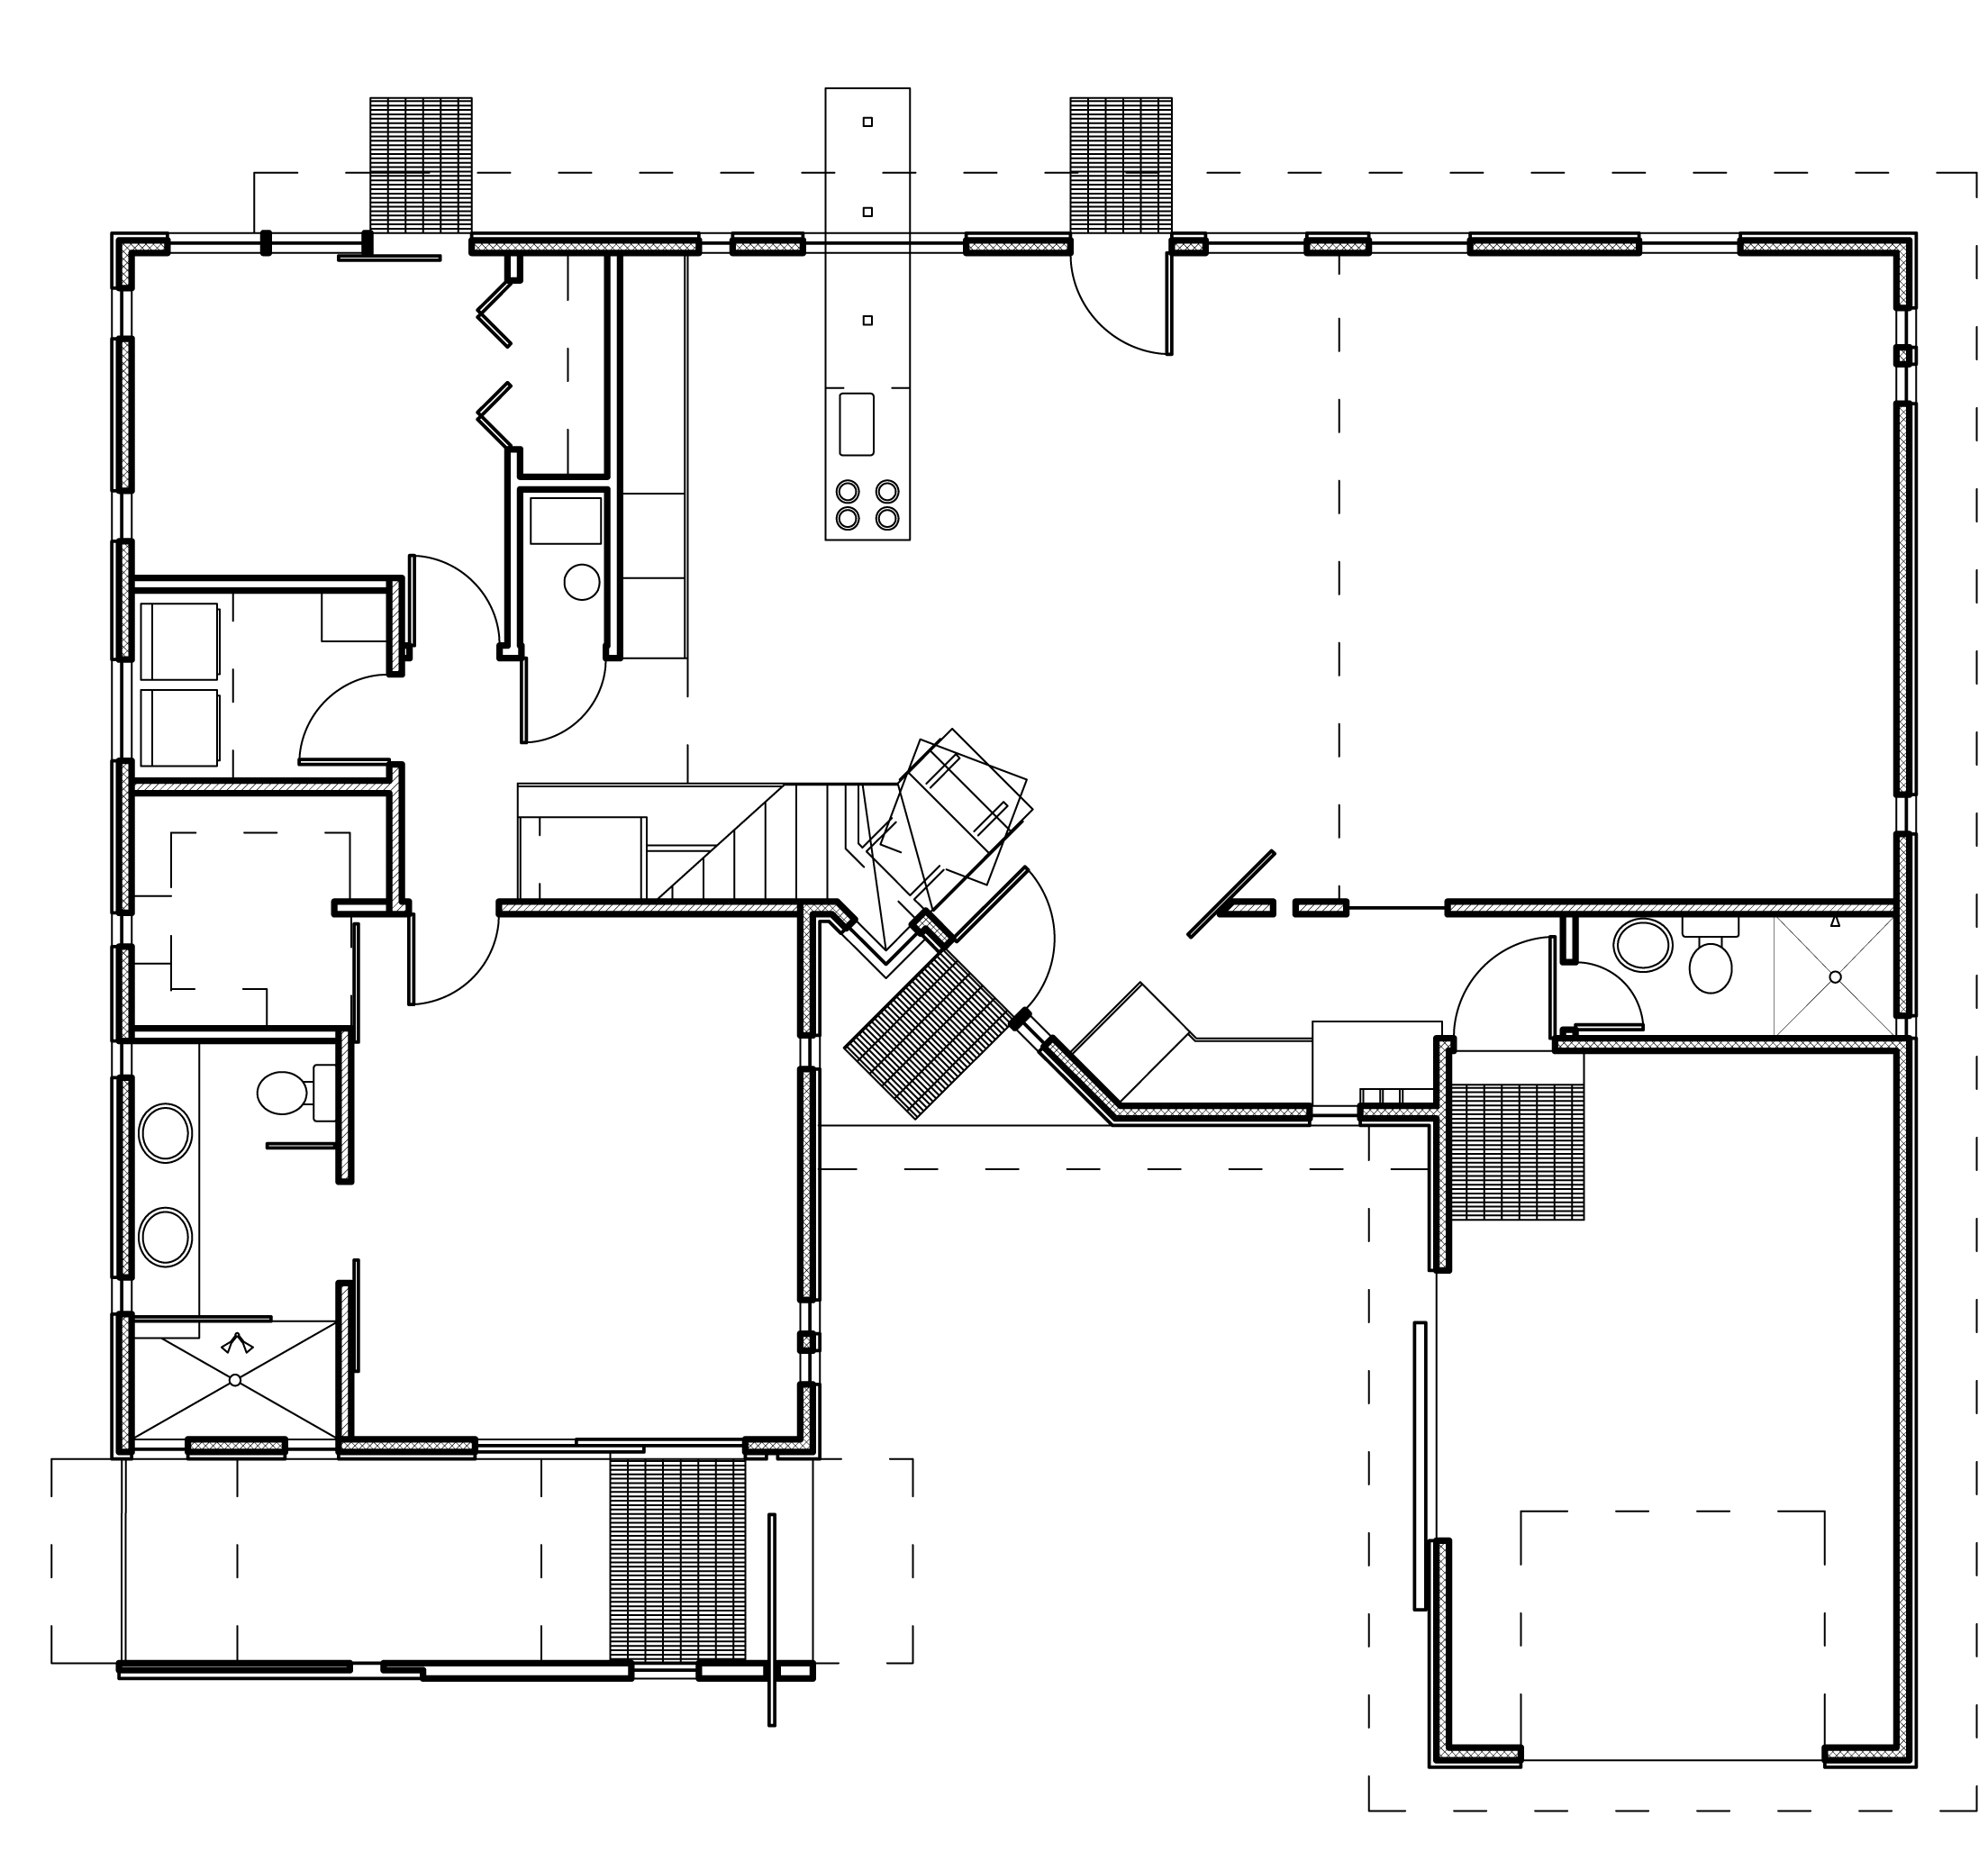 Modern house plans contemporary home designs floor plan 03 for Contemporary mansion floor plans